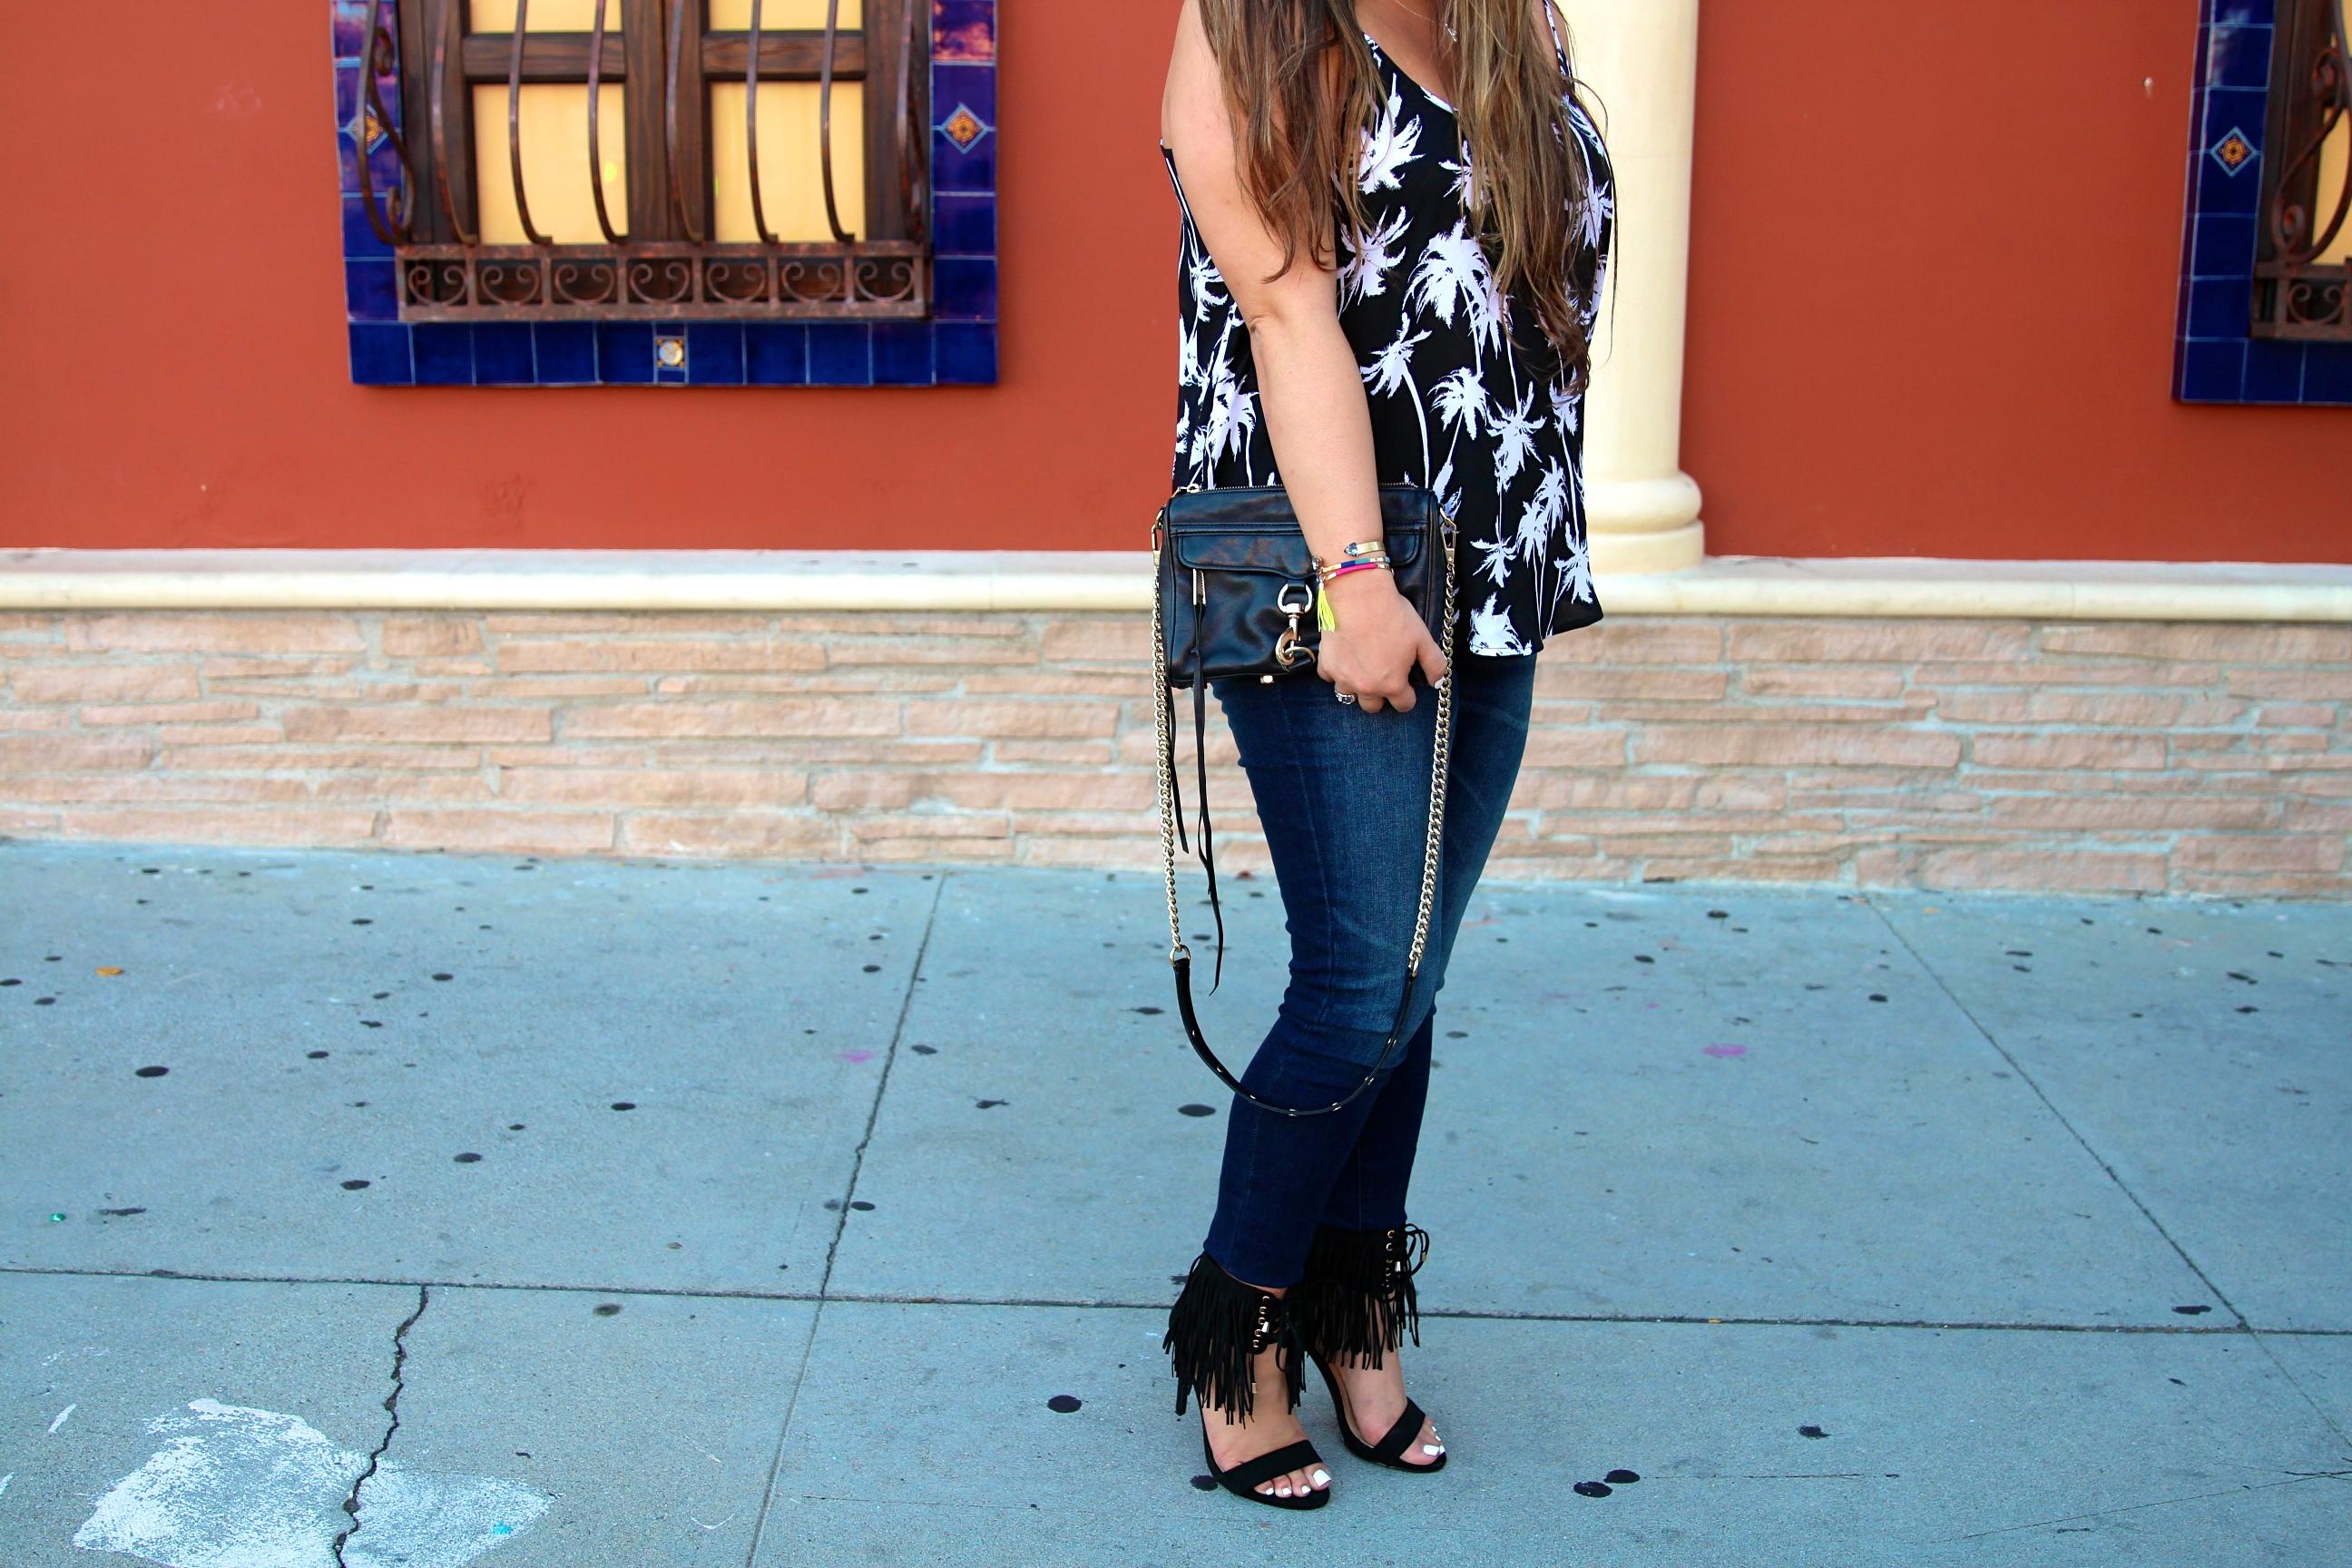 missyonmadison, melissa tierney, fashion blogger, fashion blog, rebecca minkoff, mini mac bag, rebecca minkoff mini mac bag, black fringe heels, just fab, just fab heels, fringe heels, black fringe sandals, target style, dark wash skinny jeans, fall style, fall jeans, palm tree top, palm trees, palm tree top, palm tree camisole, kohls, target denim,